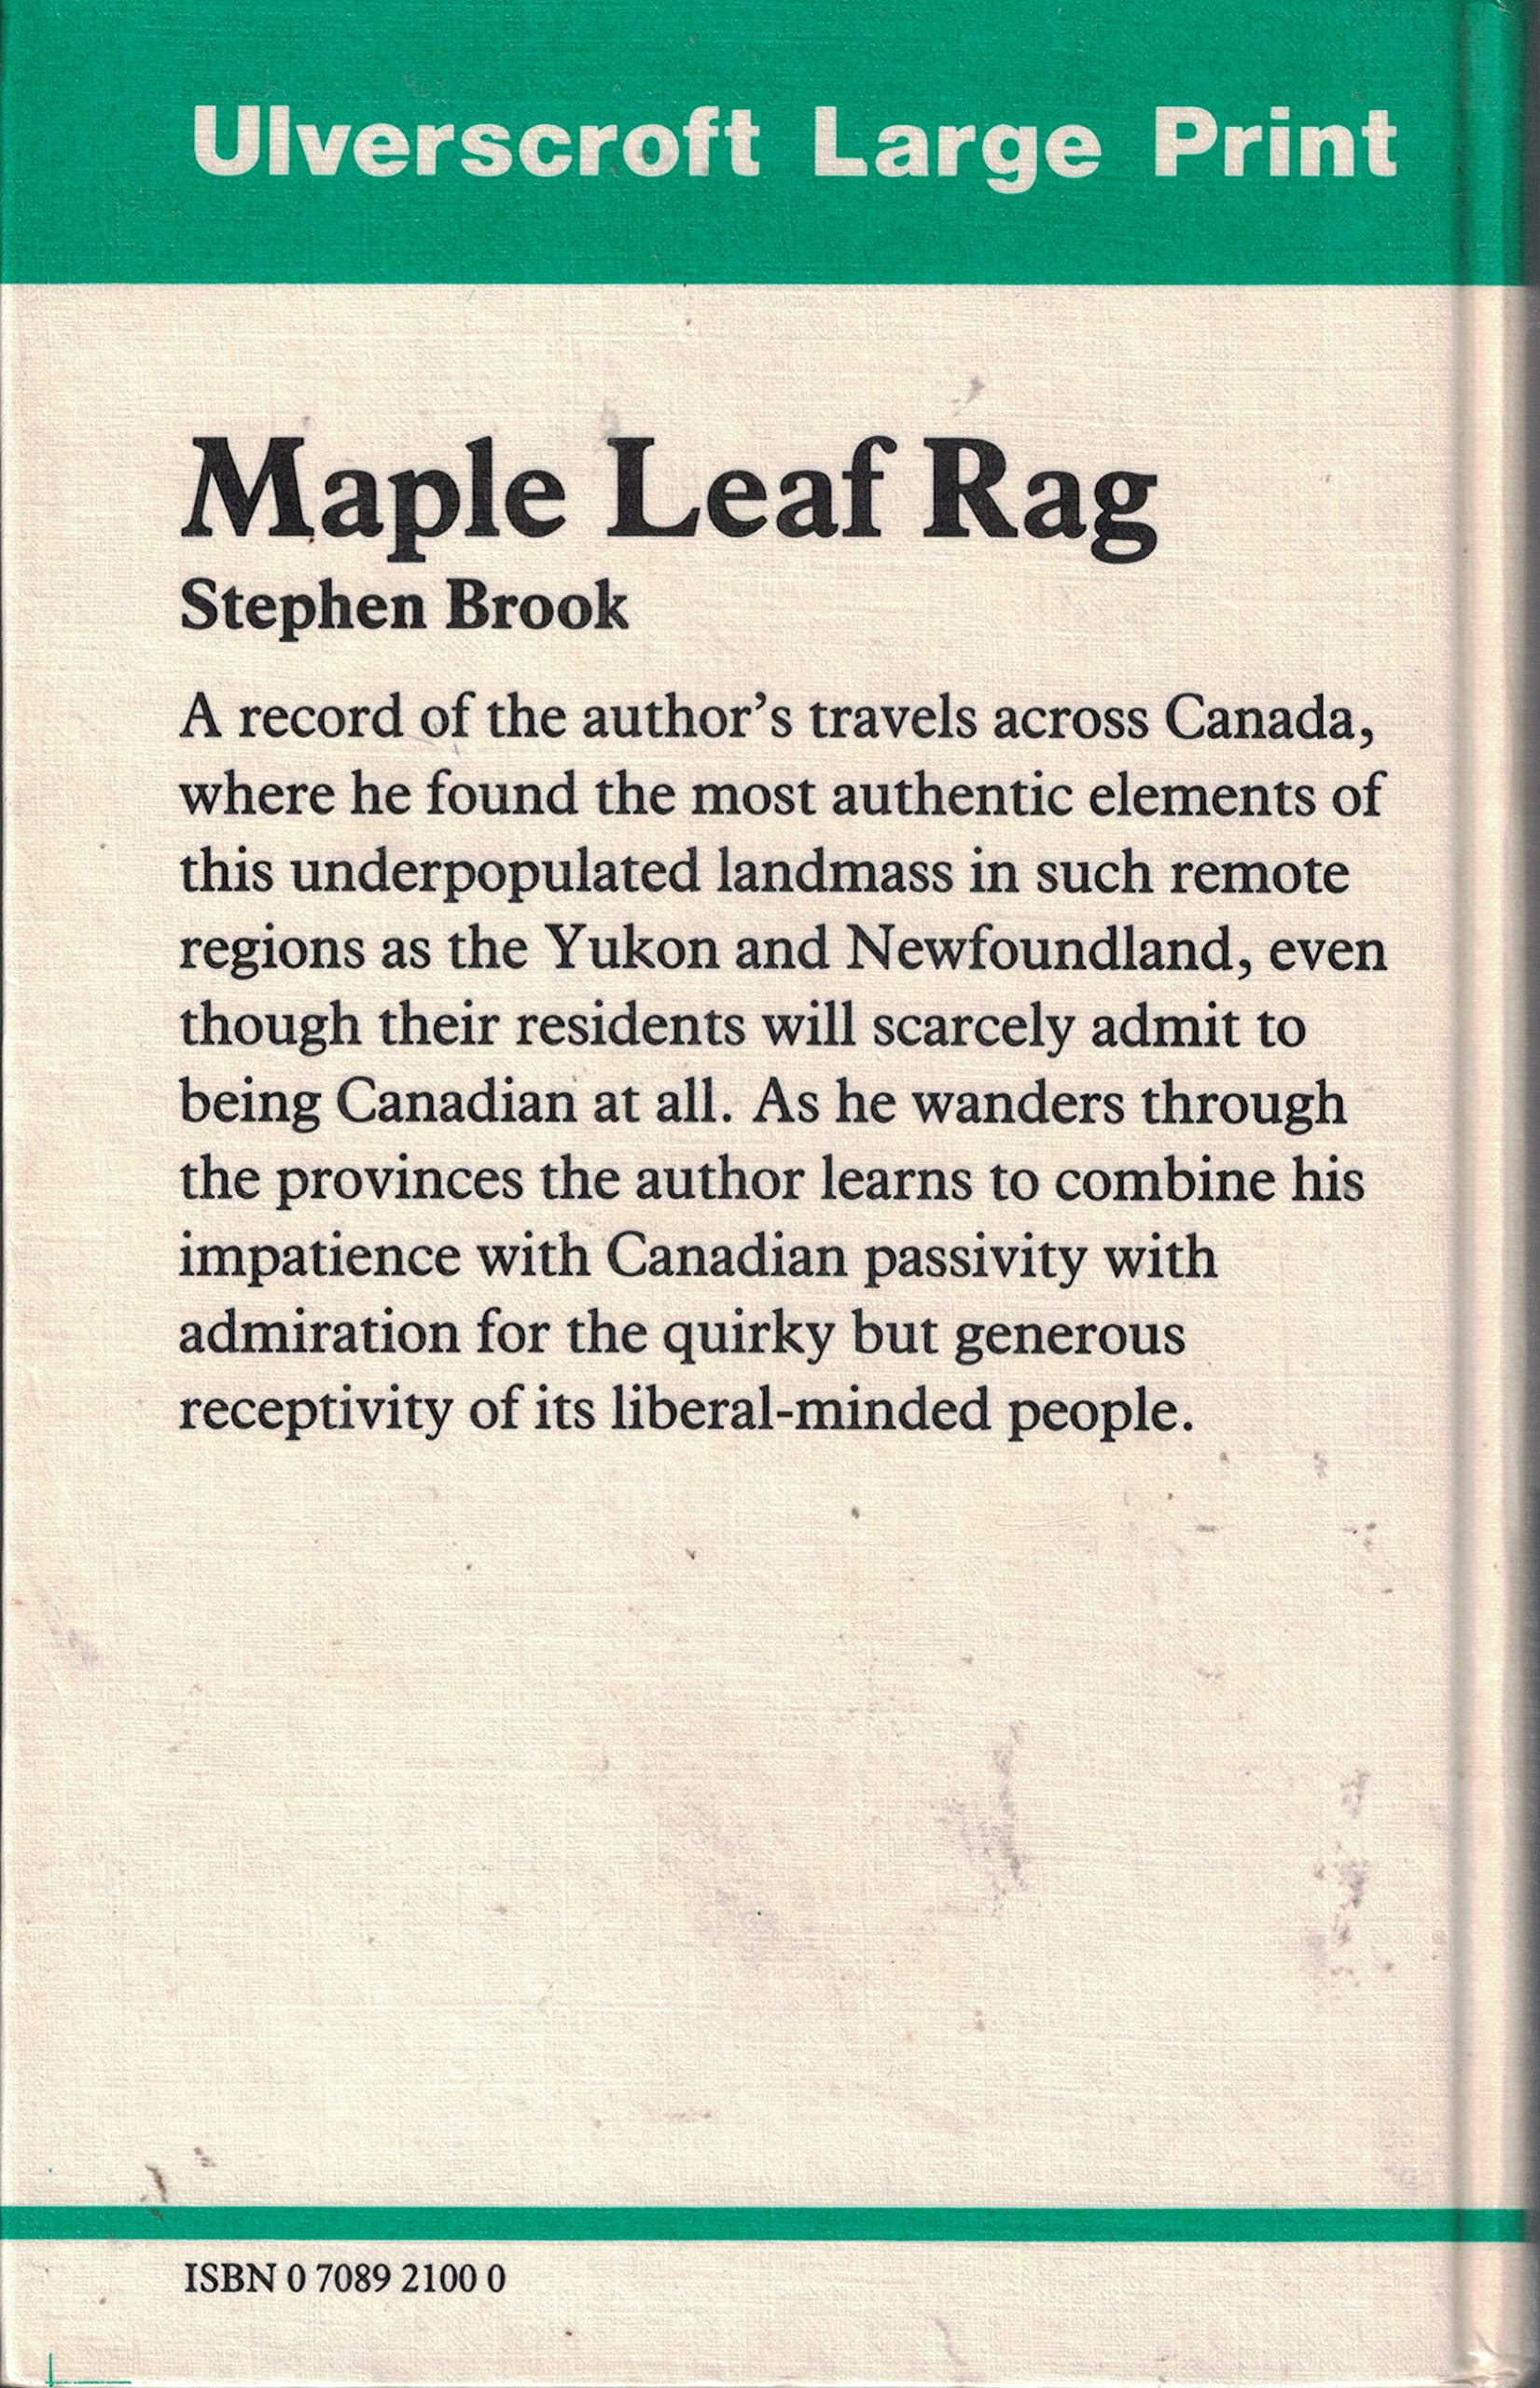 Maple leaf rag - travels across Canada